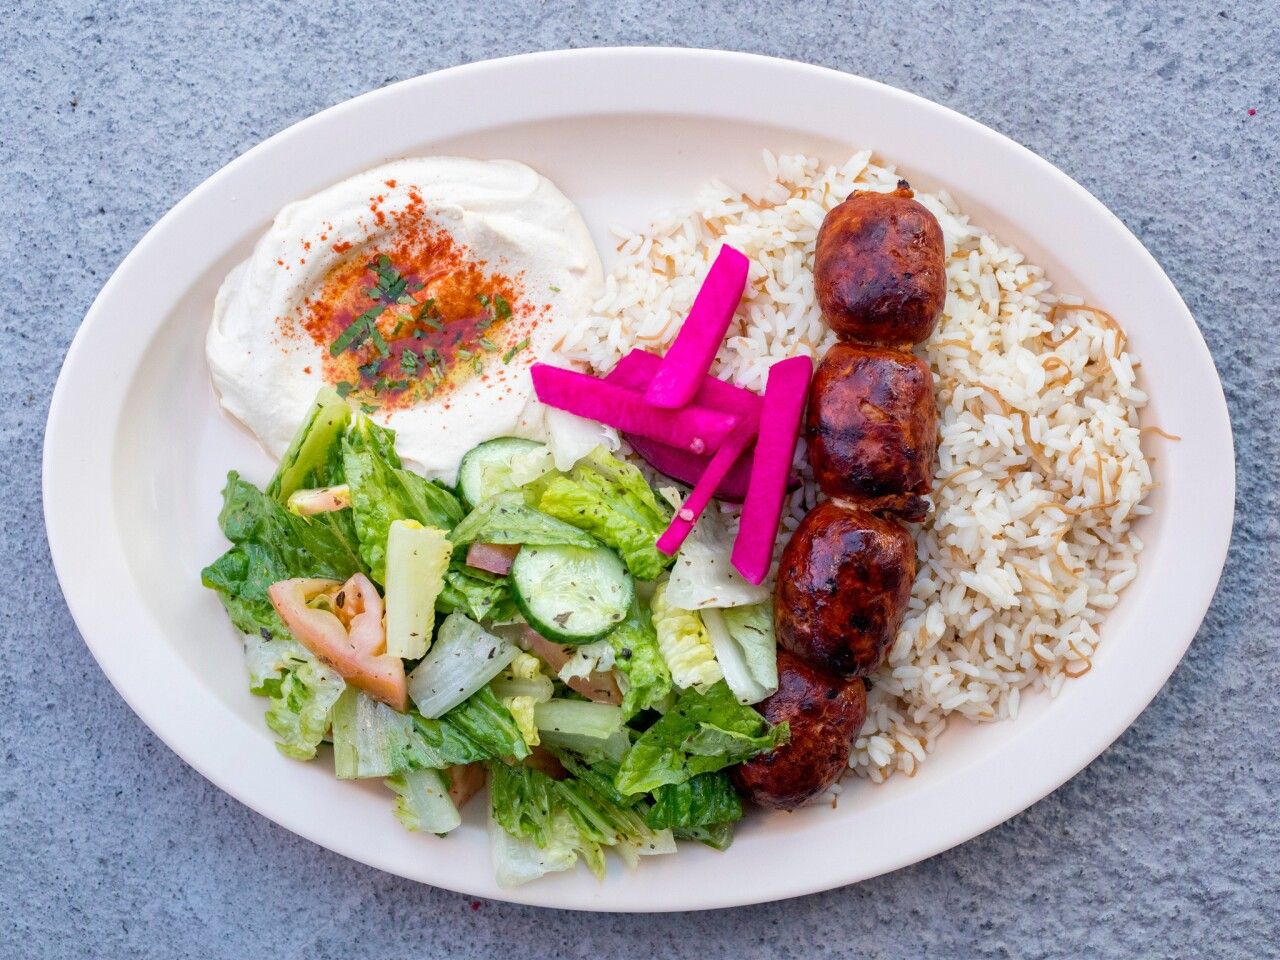 Chorizo kebab served with rice, Lebanese salad and hummus at X'tiosu Kitchen in Boyle Heights.